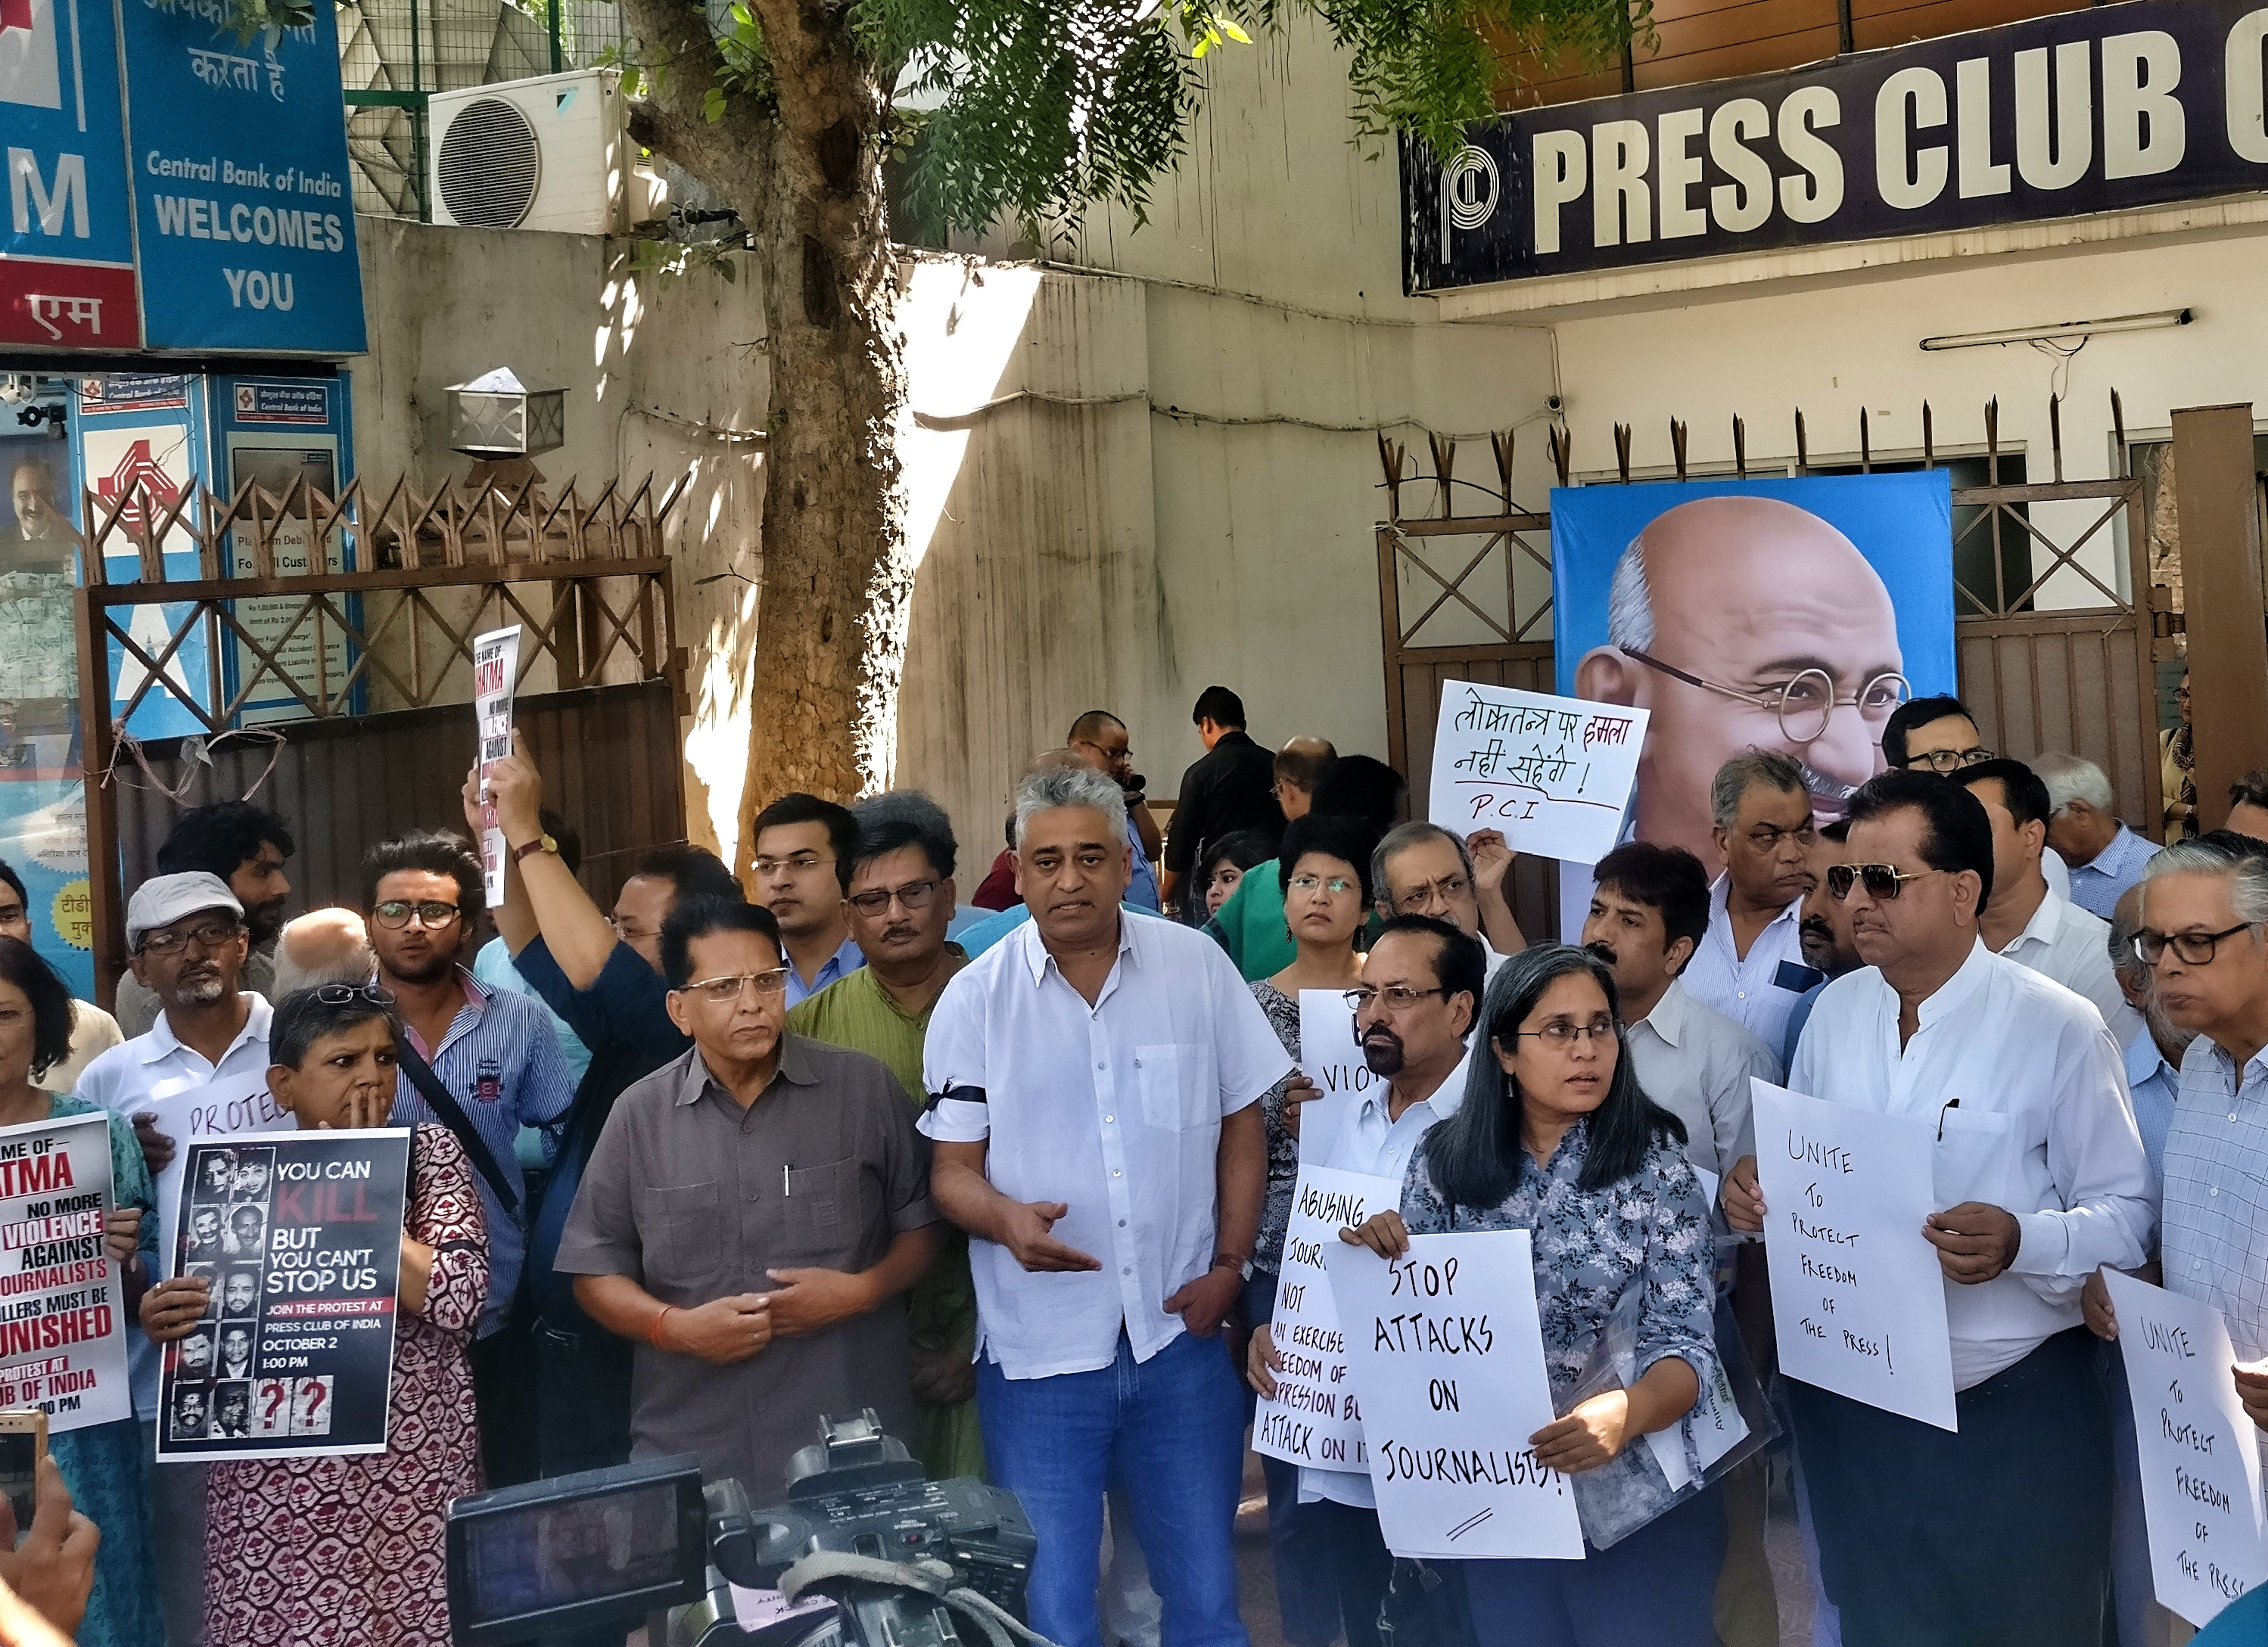 Journalists protest outside Press Club of India, New Delhi. Image Credit: Rohan Venkataramakrishnan